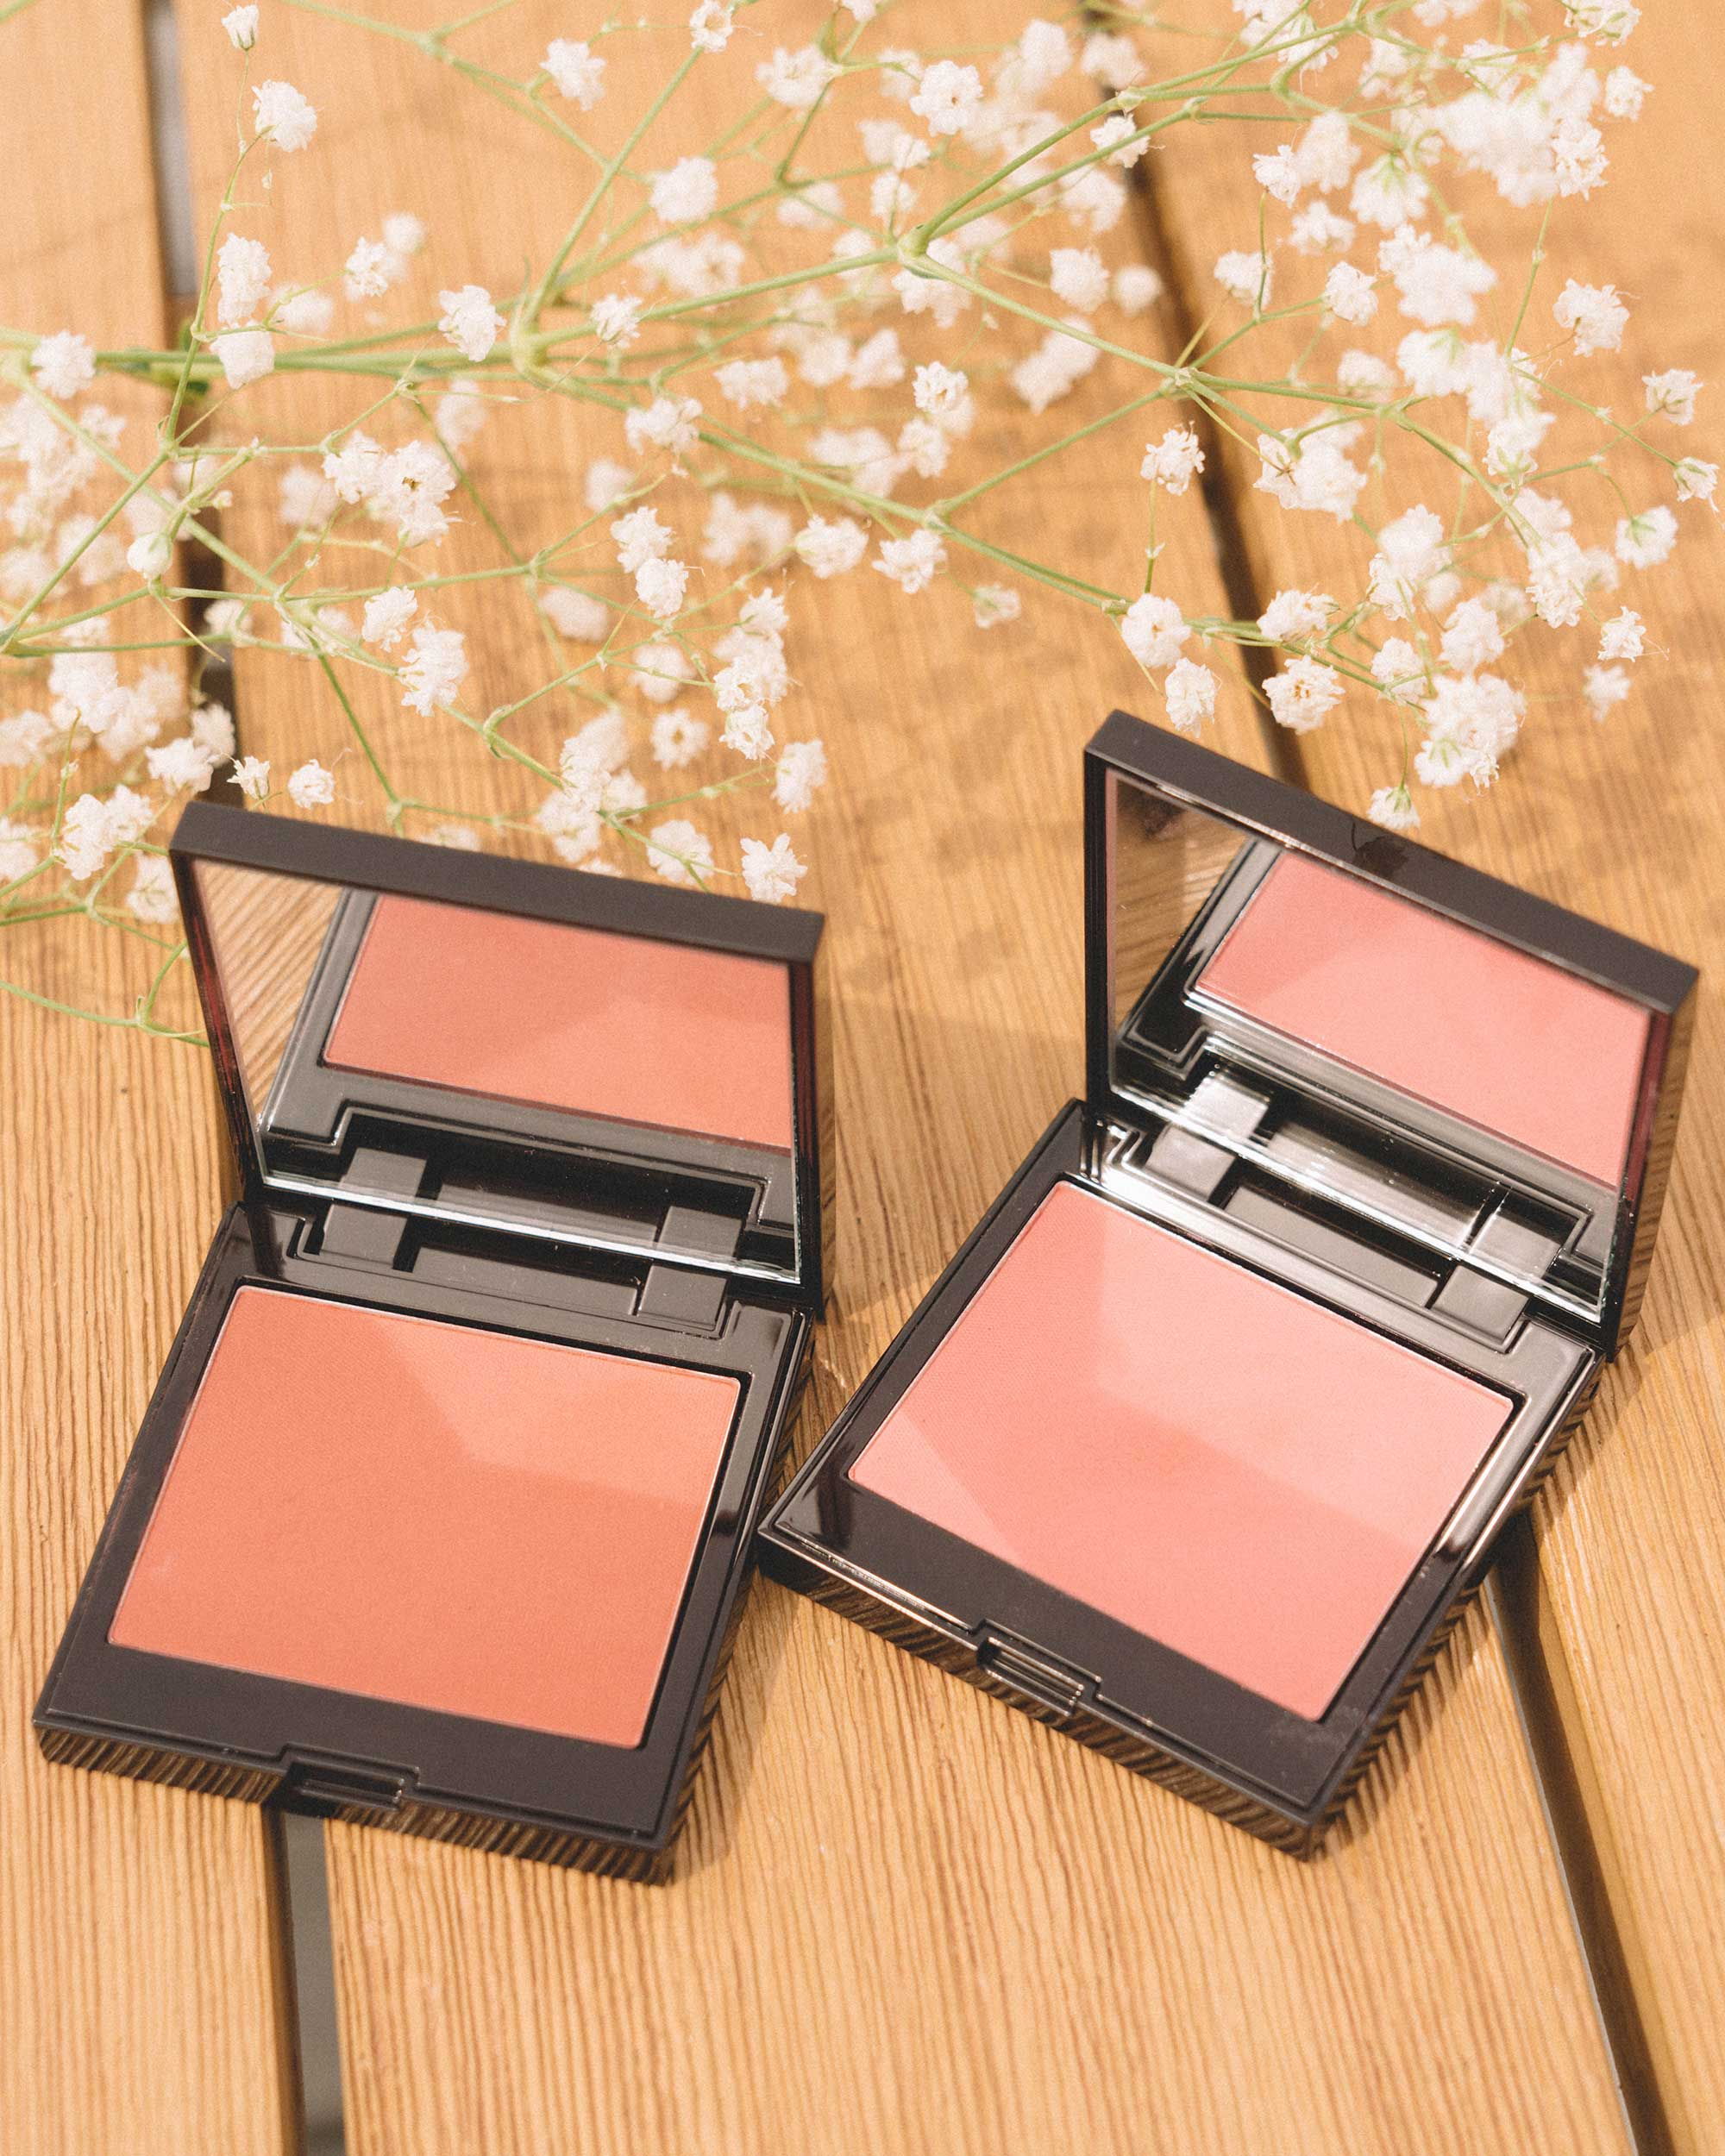 Blush Colour Infusion - Laura Mercier Blush Colour Infusion in Strawberry (left) & Rose (right) for the perfect summer flush